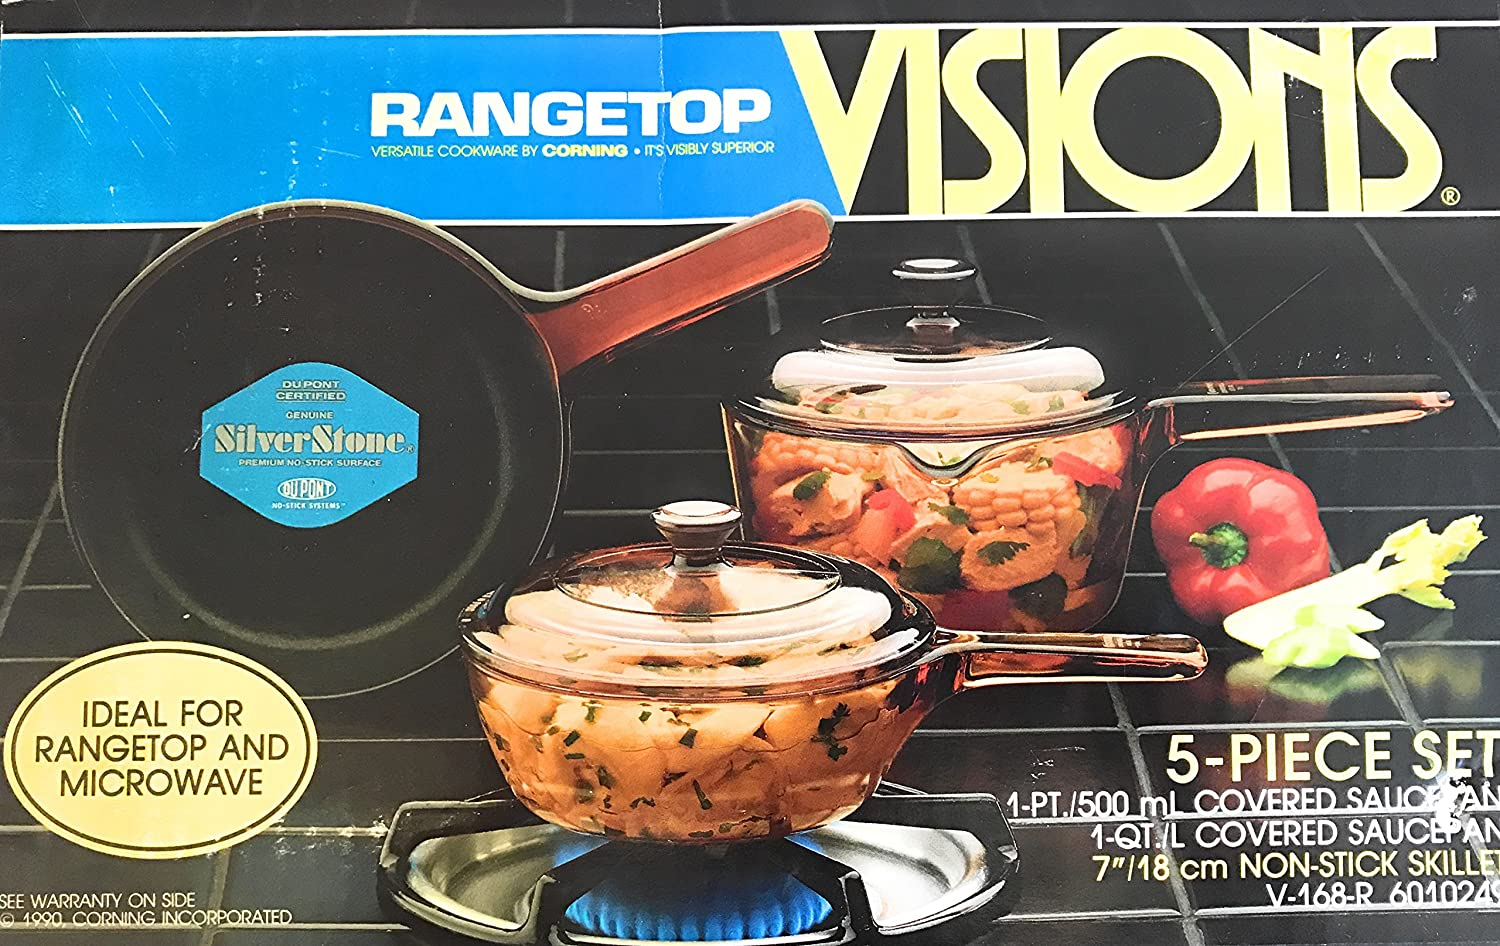 Corning Visions Visionware Vision Ware 5 Piece Set - 7 inch Amber Skillet, Small .5L Sauce Pan w/ Lid & Small 1L Sauce Pan w/Lid 91udUcjAHkLSL1500_